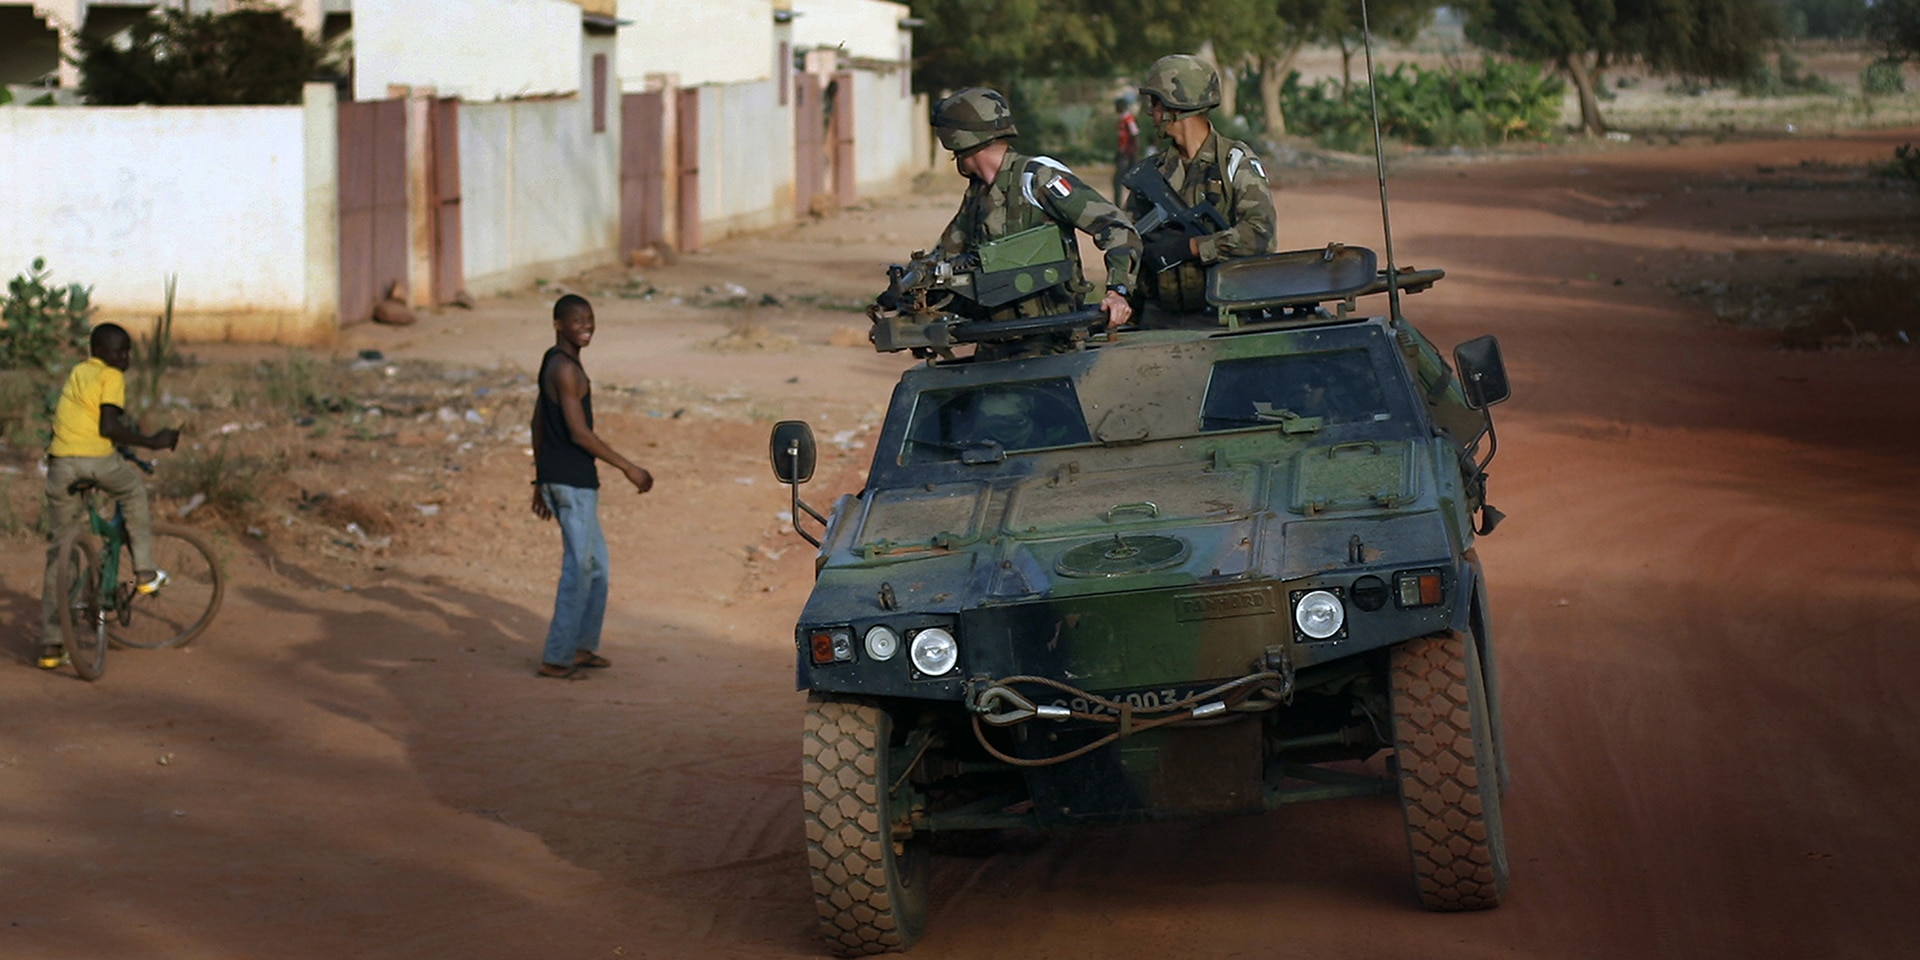 A military vehicle with two soldiers drives past young men in the conflict region of Mali.